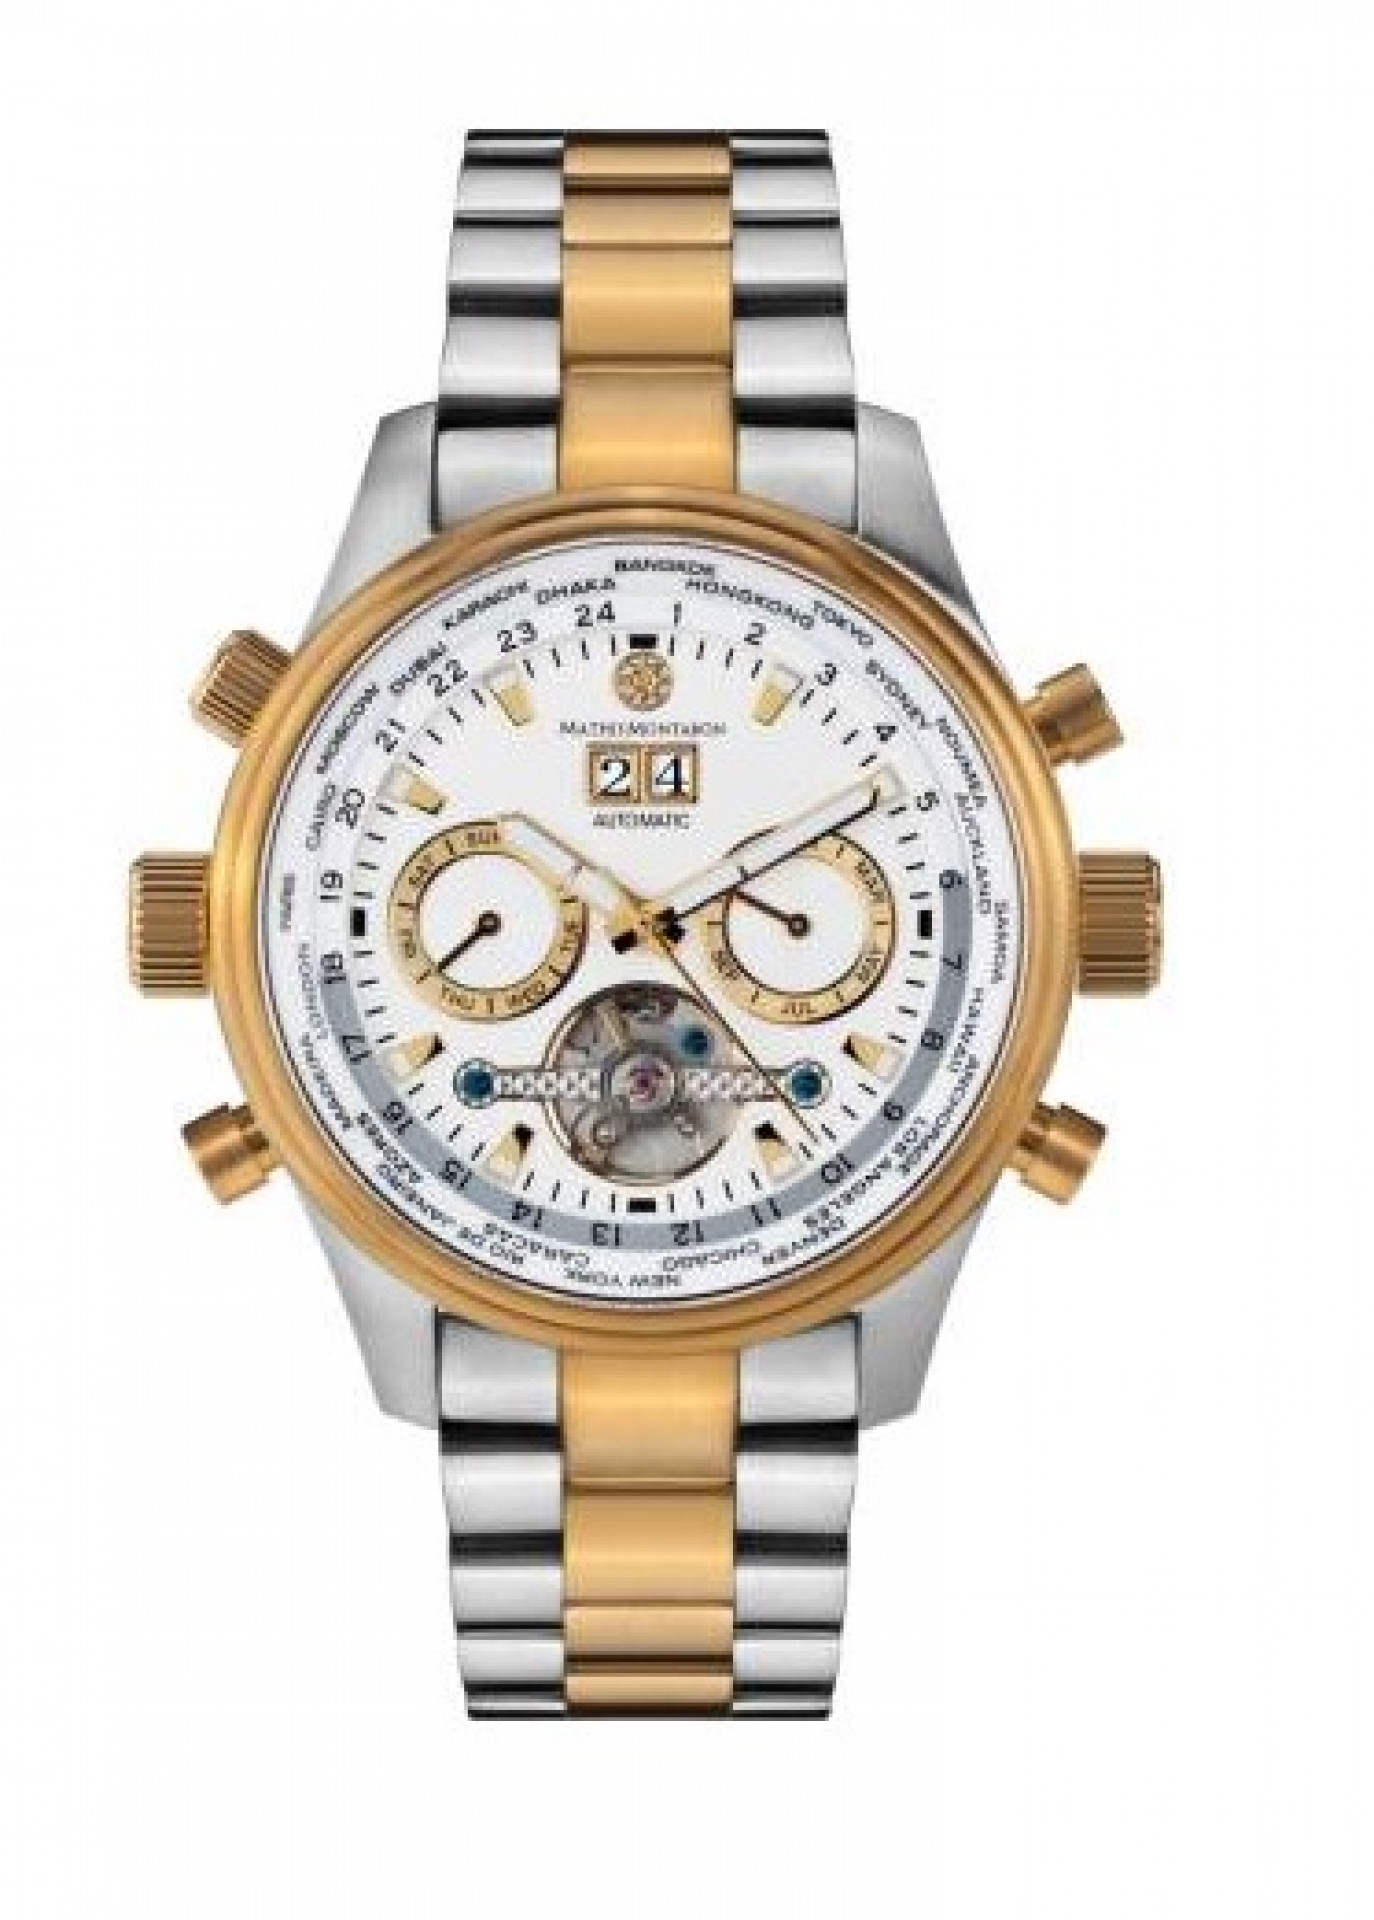 MATHIS MONTABON Men's Globe Trotter Silver and Gold Stainless Steel Watch